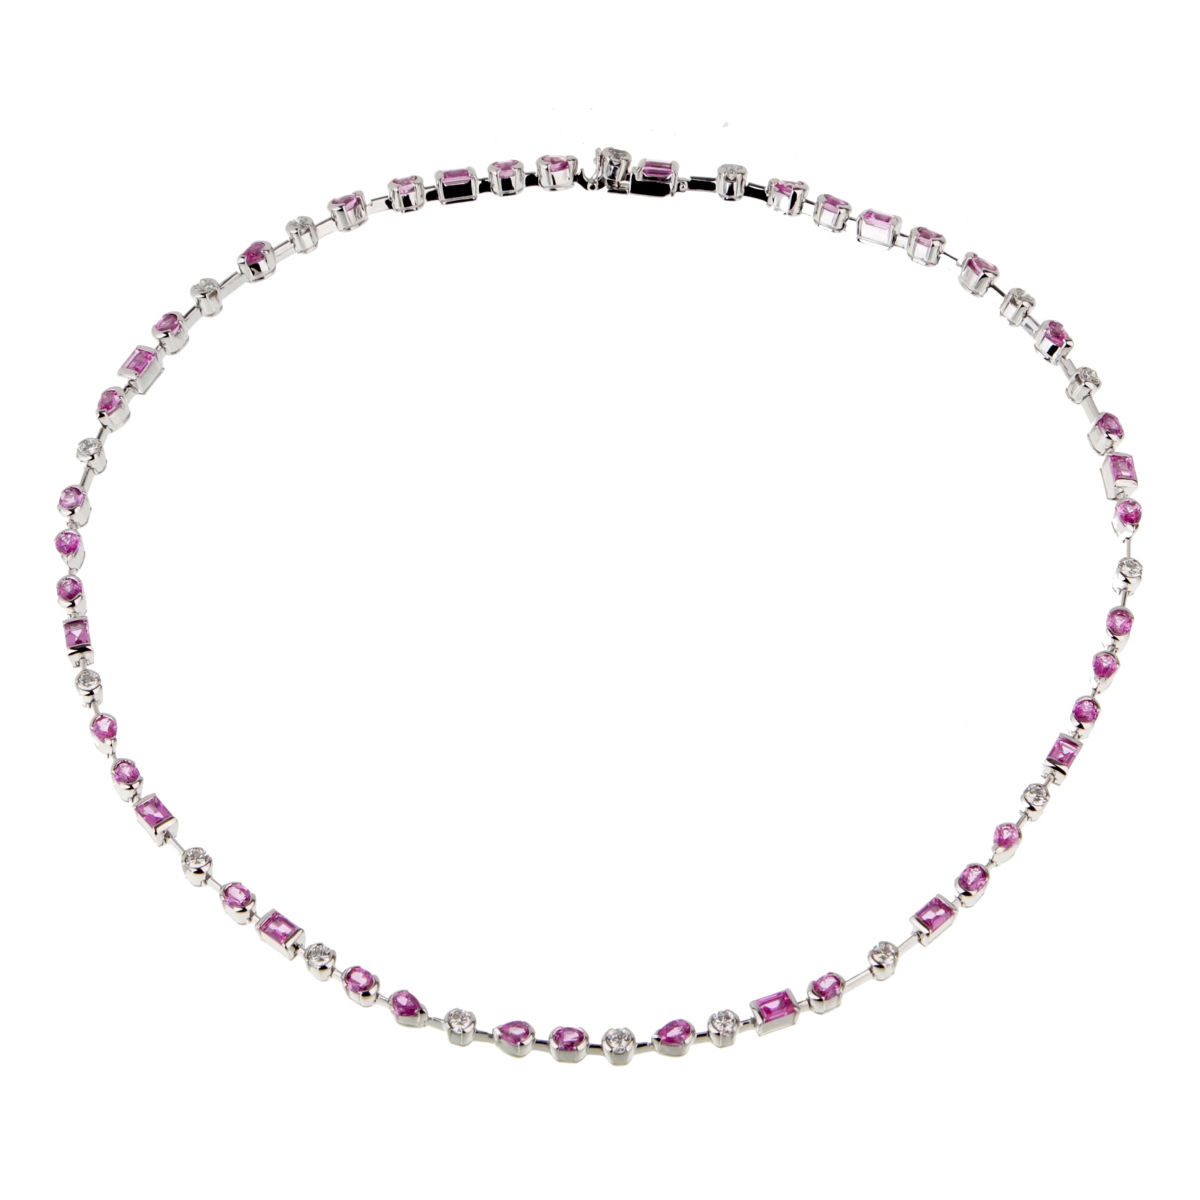 Cartier Meli Melo Diamond Pink Sapphire Necklace - Cartier Jewelry